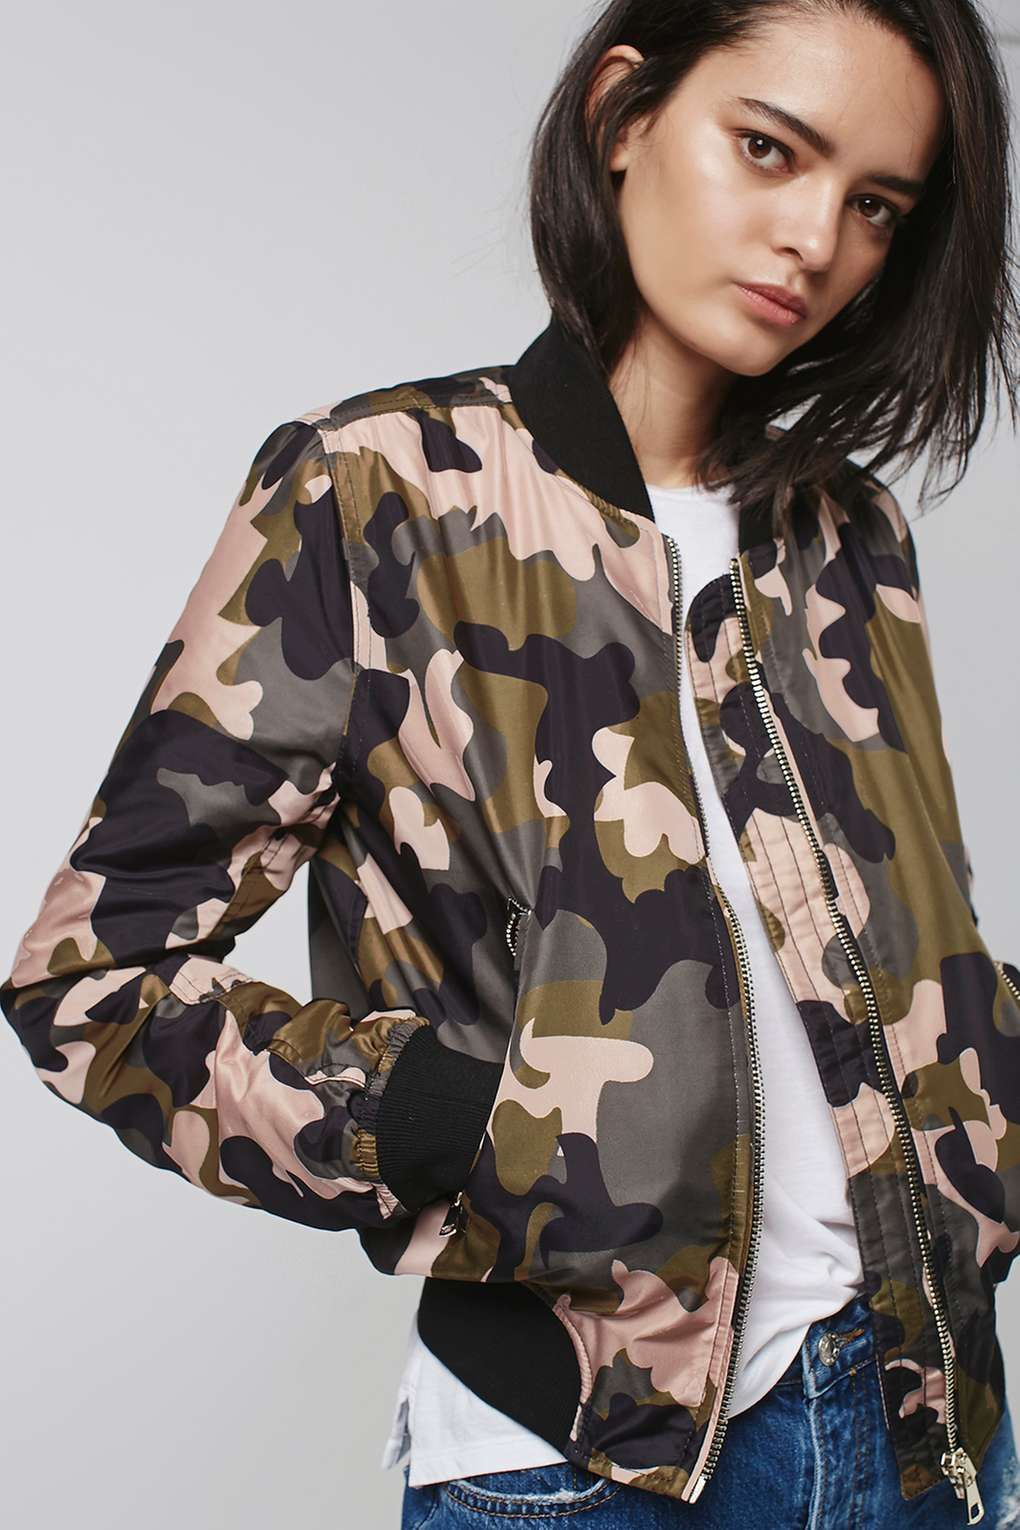 b3c441a8 Take the utilitarian look to the next level with the camouflage print bomber  jacket. Complete with authentic MA1 details, ribbed trims and contrasting  pink ...